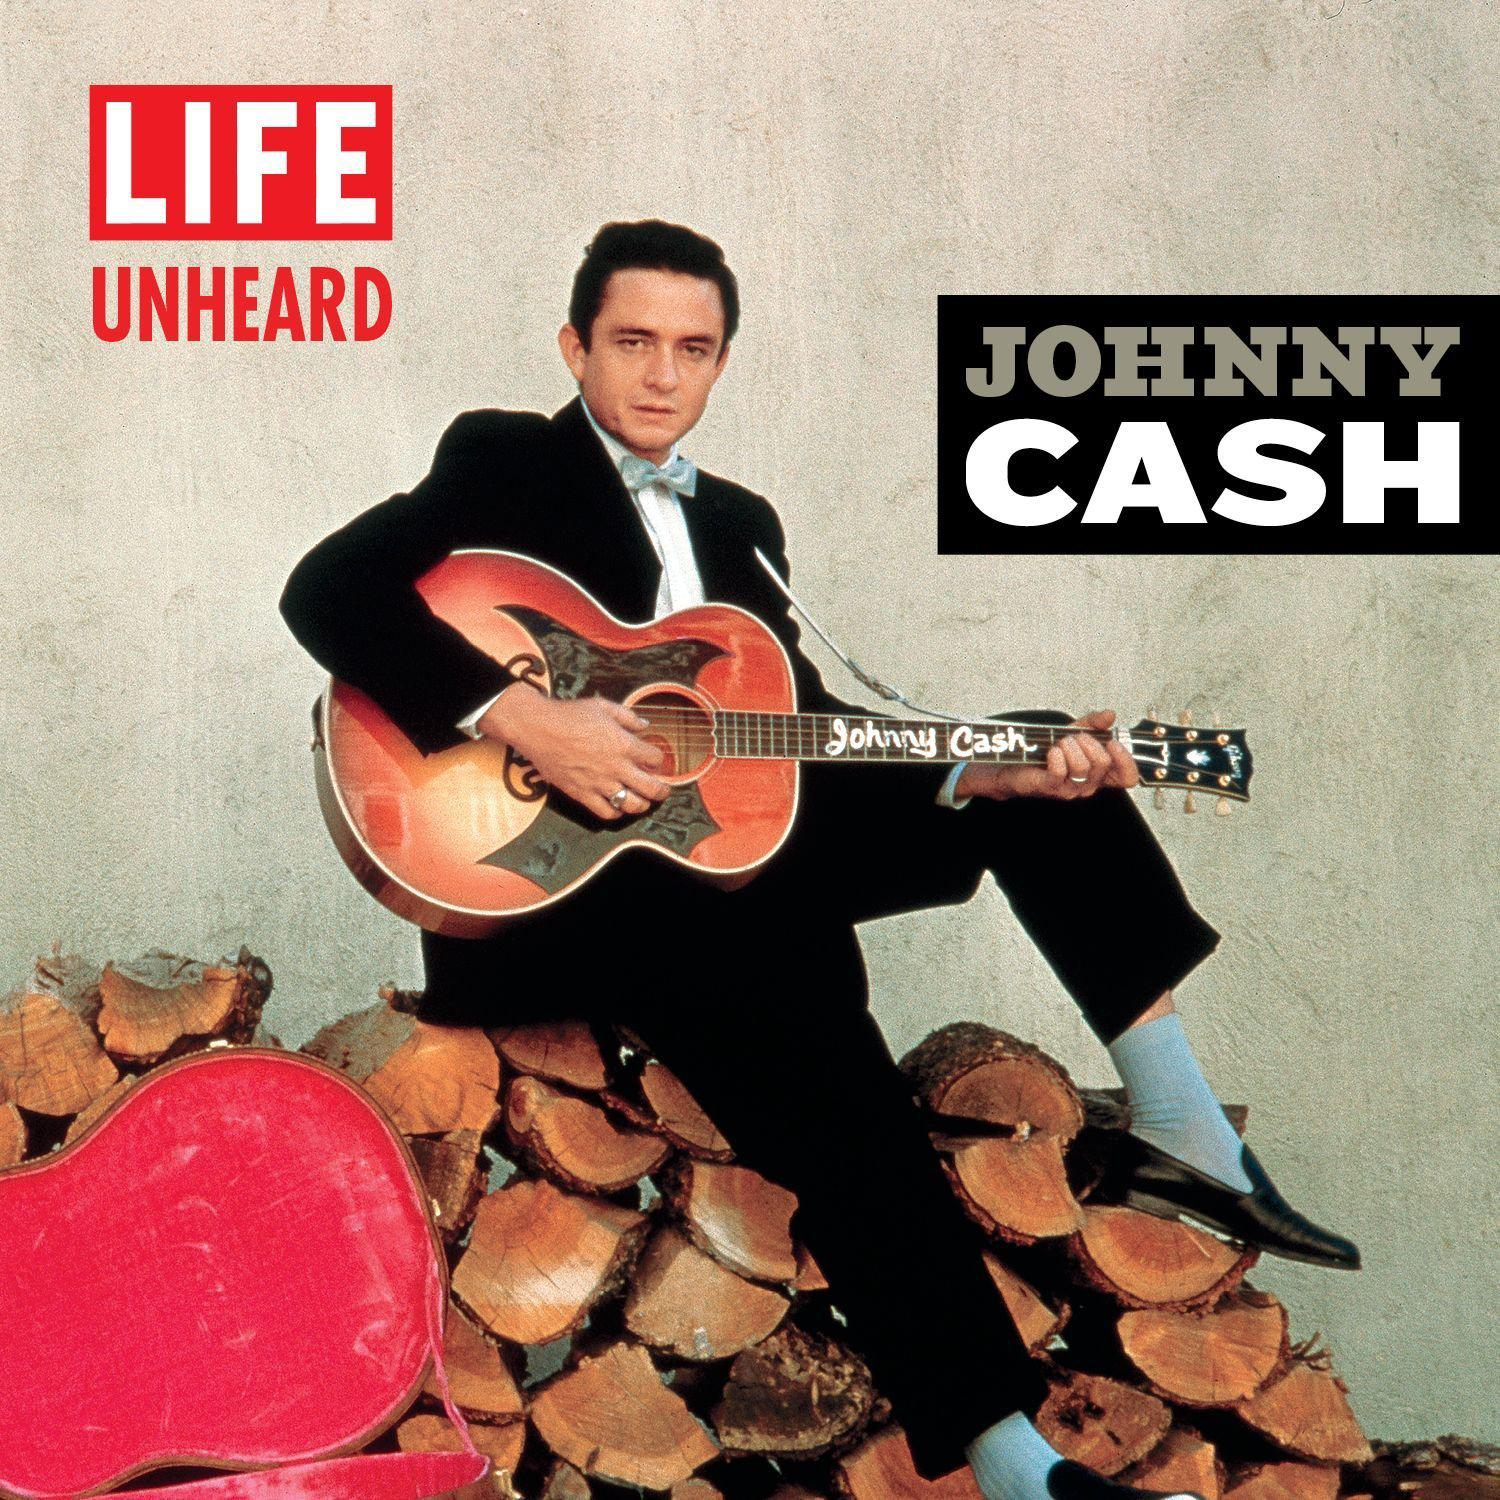 Johnny Cash - Life Unheard (2013) [MULTI]